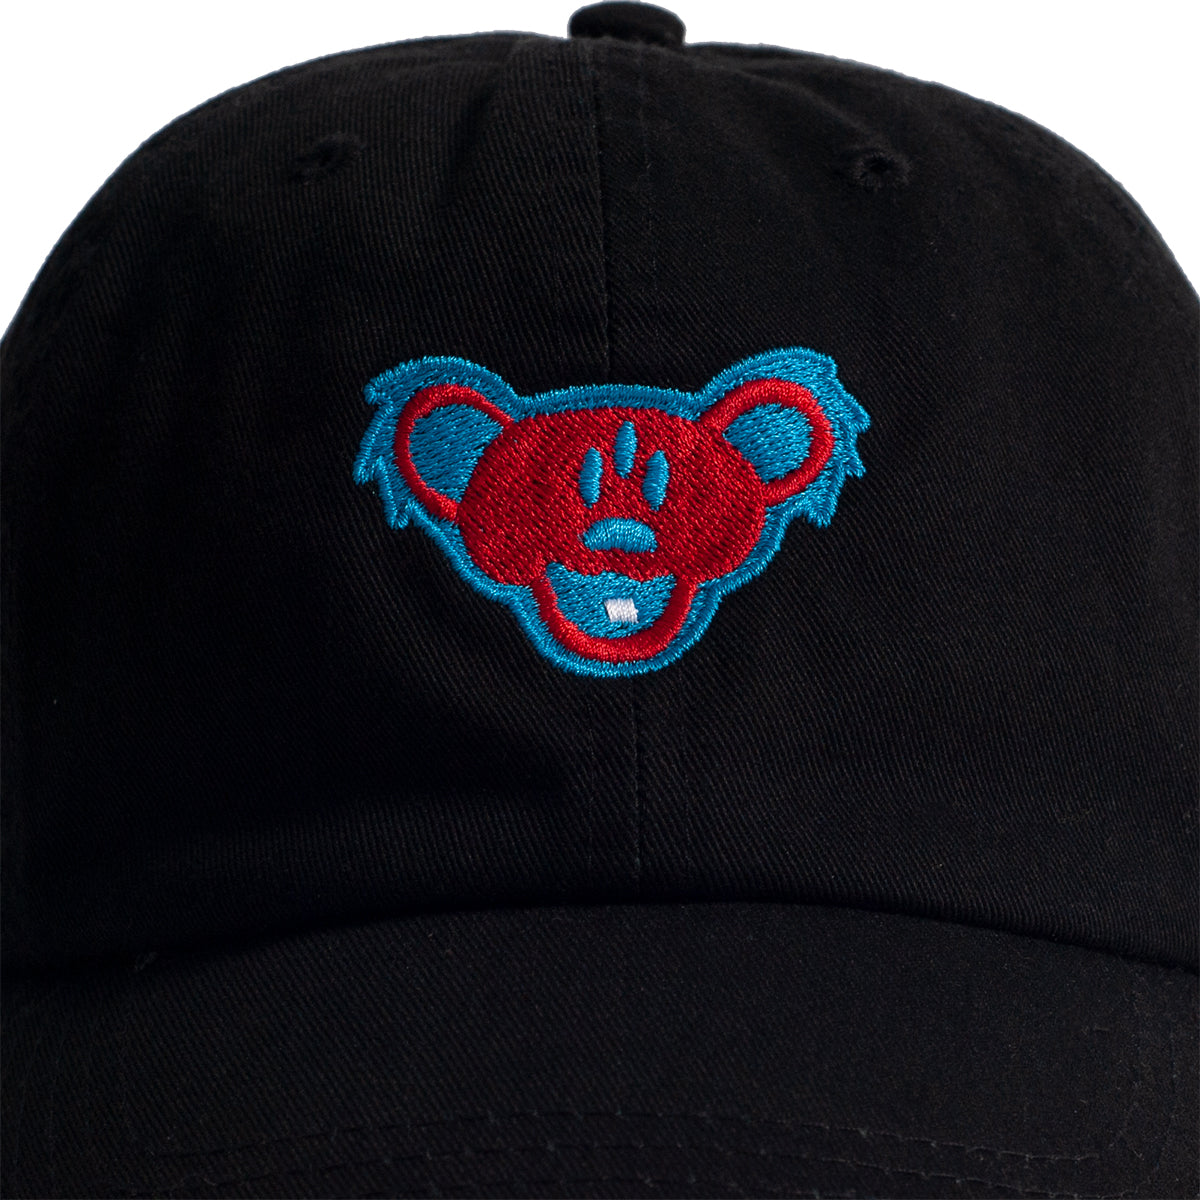 TRIPPY BEAR DAD HAT - ABSÜRE CLOTHING